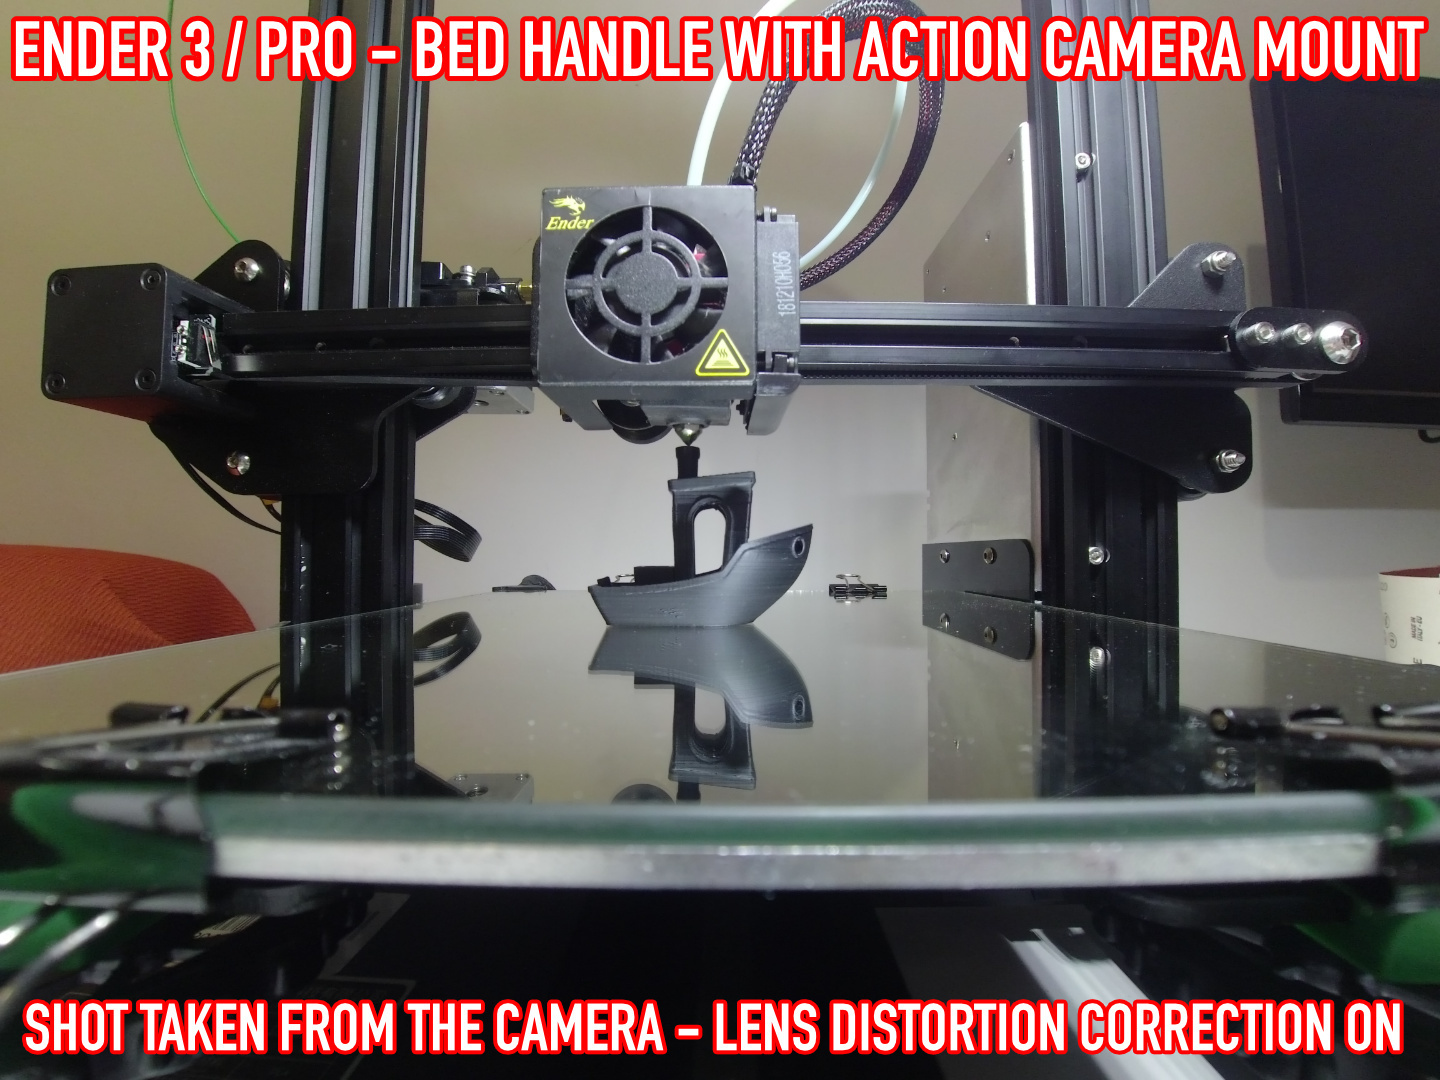 12.jpg Download free STL file ADKS - Ender 3 Bed Handle with action cam mount • Template to 3D print, Adarkstudio